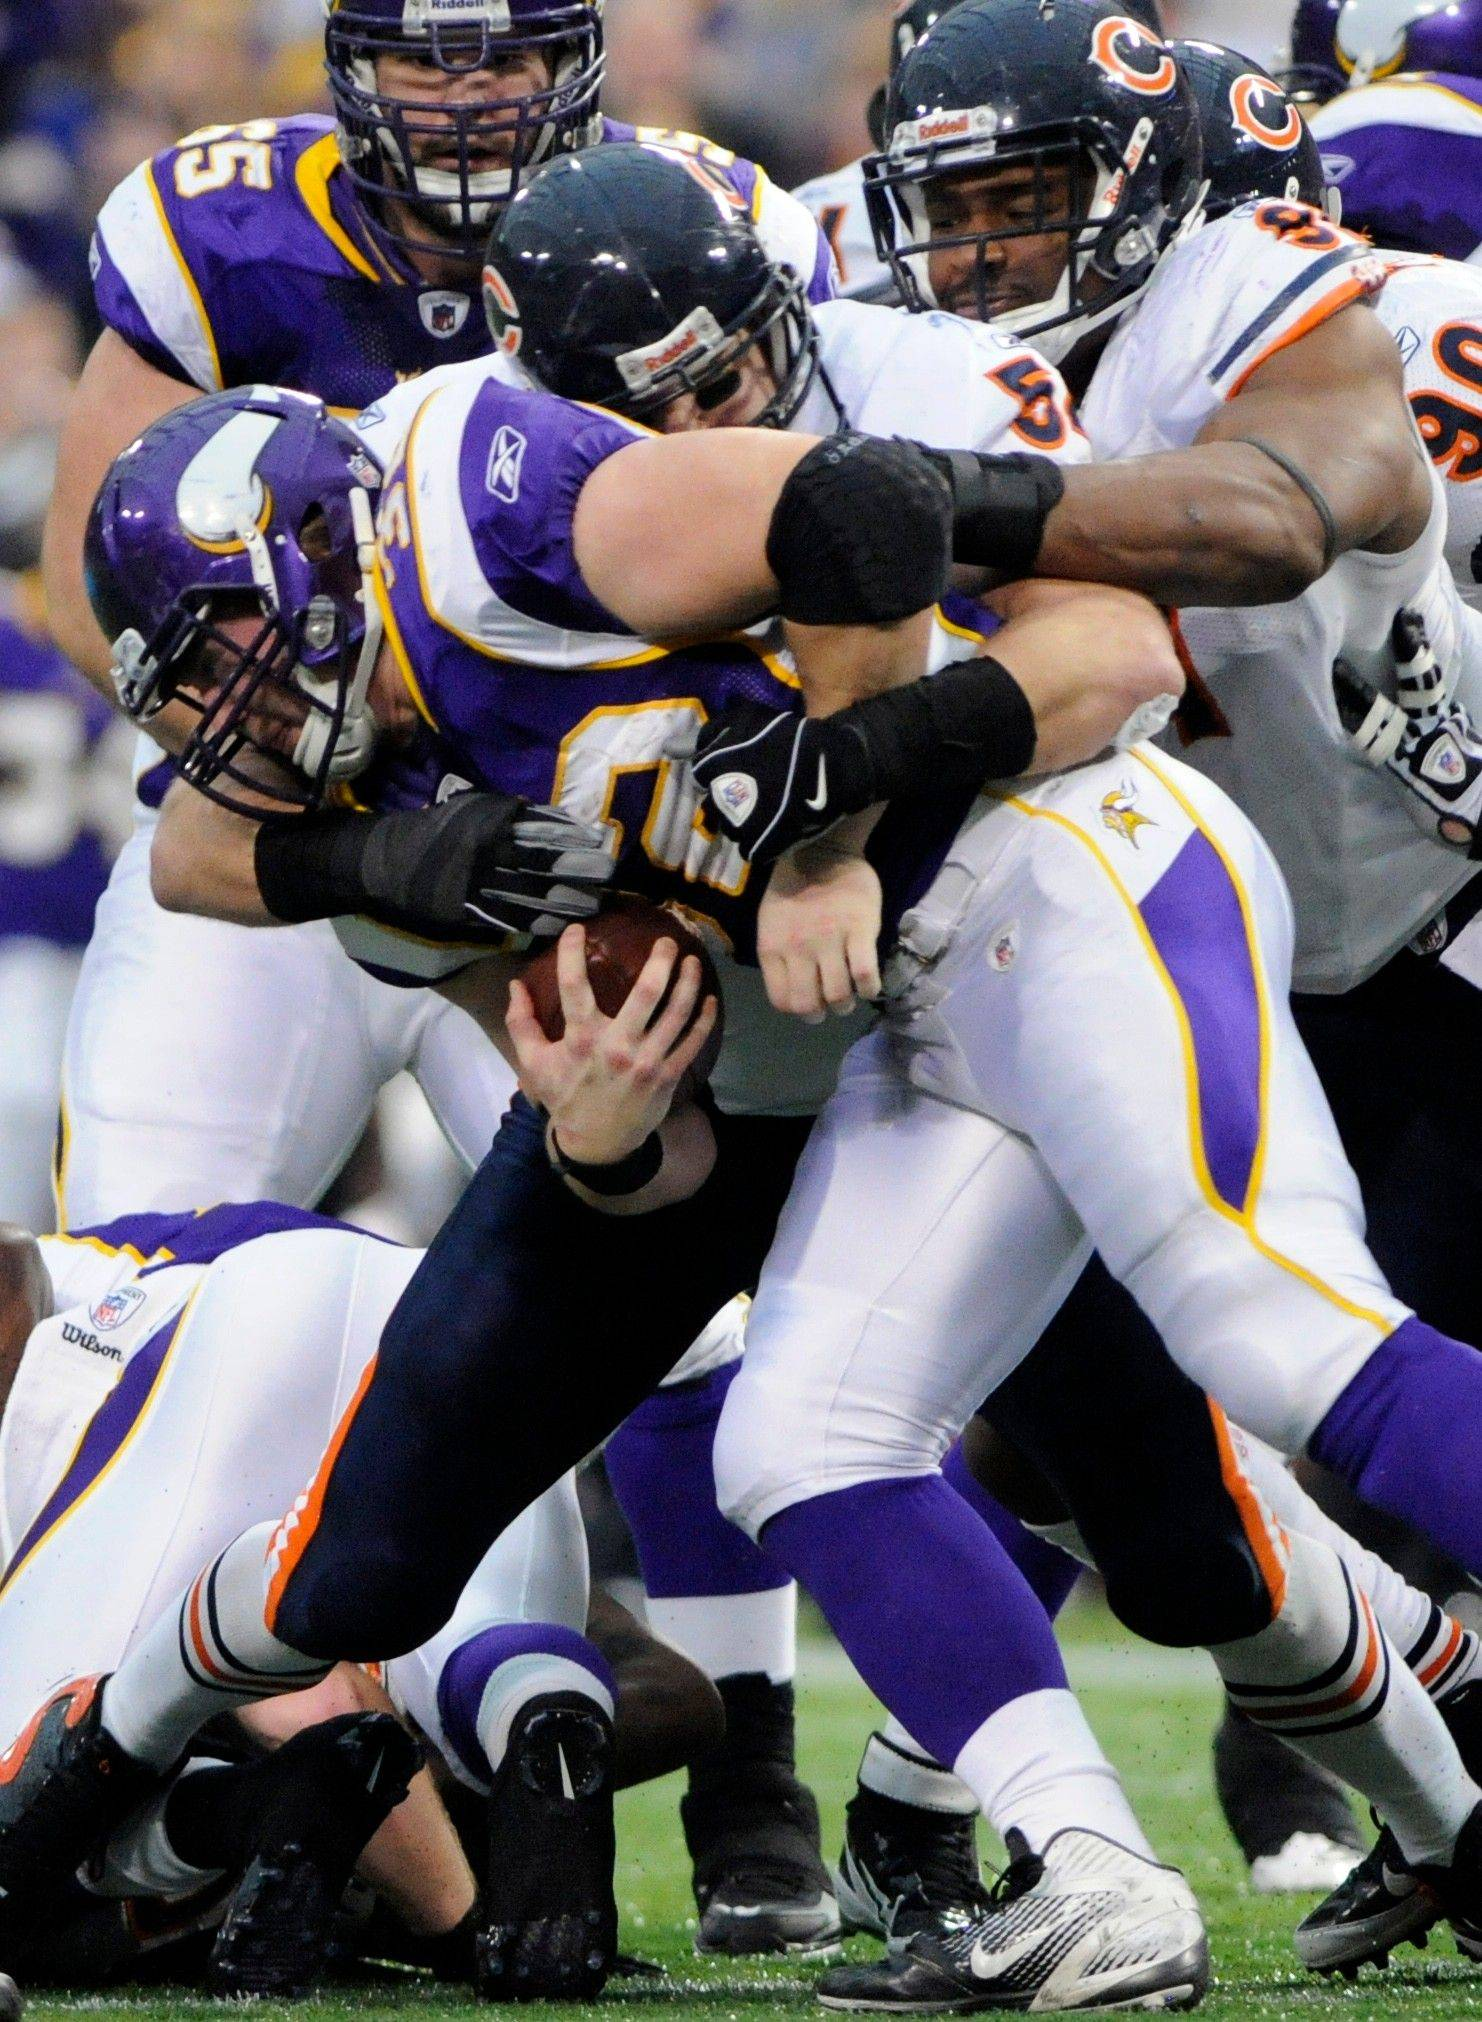 Minnesota Vikings running back Toby Gerhart gets tackled by Chicago Bears middle linebacker Brian Urlacher and defensive tackle Amobi Okoye in the first half.